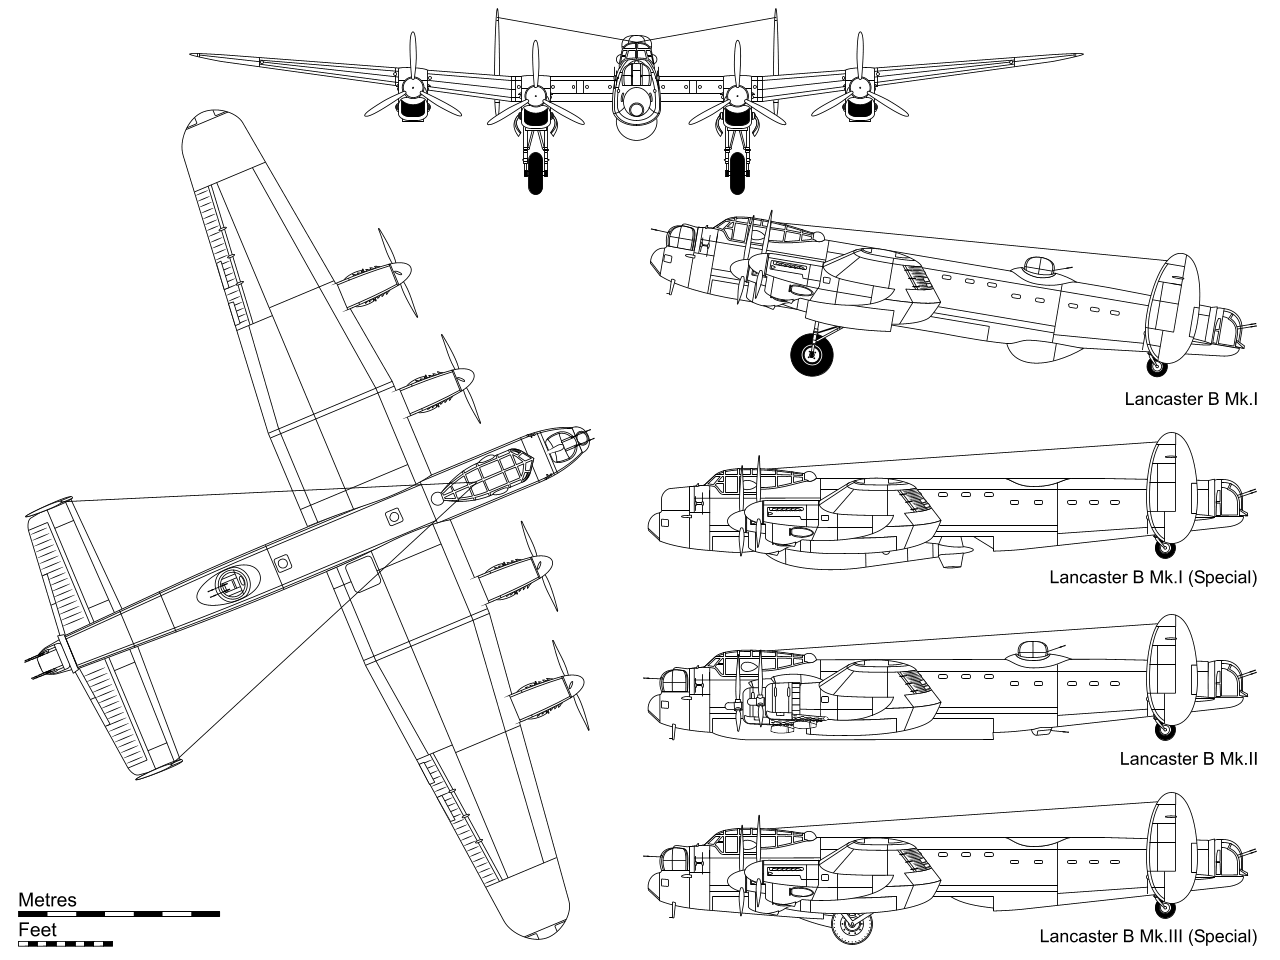 1 4 scale airplane lights with Avro 683 Lancaster Mk X on Avro 683 Lancaster Mk X in addition The Atomic Bomb Wwii moreover 14556 Man Wildcat in addition 3 34 Scale Custom Uss Flagg Thing Massive 58958 furthermore A 53 Acre Estate Rolls Royce 4M Gift Evander Holyfield Plea Worshipers New Gulfstream Inside World Mega Rich Preacher Faced JAIL Financial Secrecy.